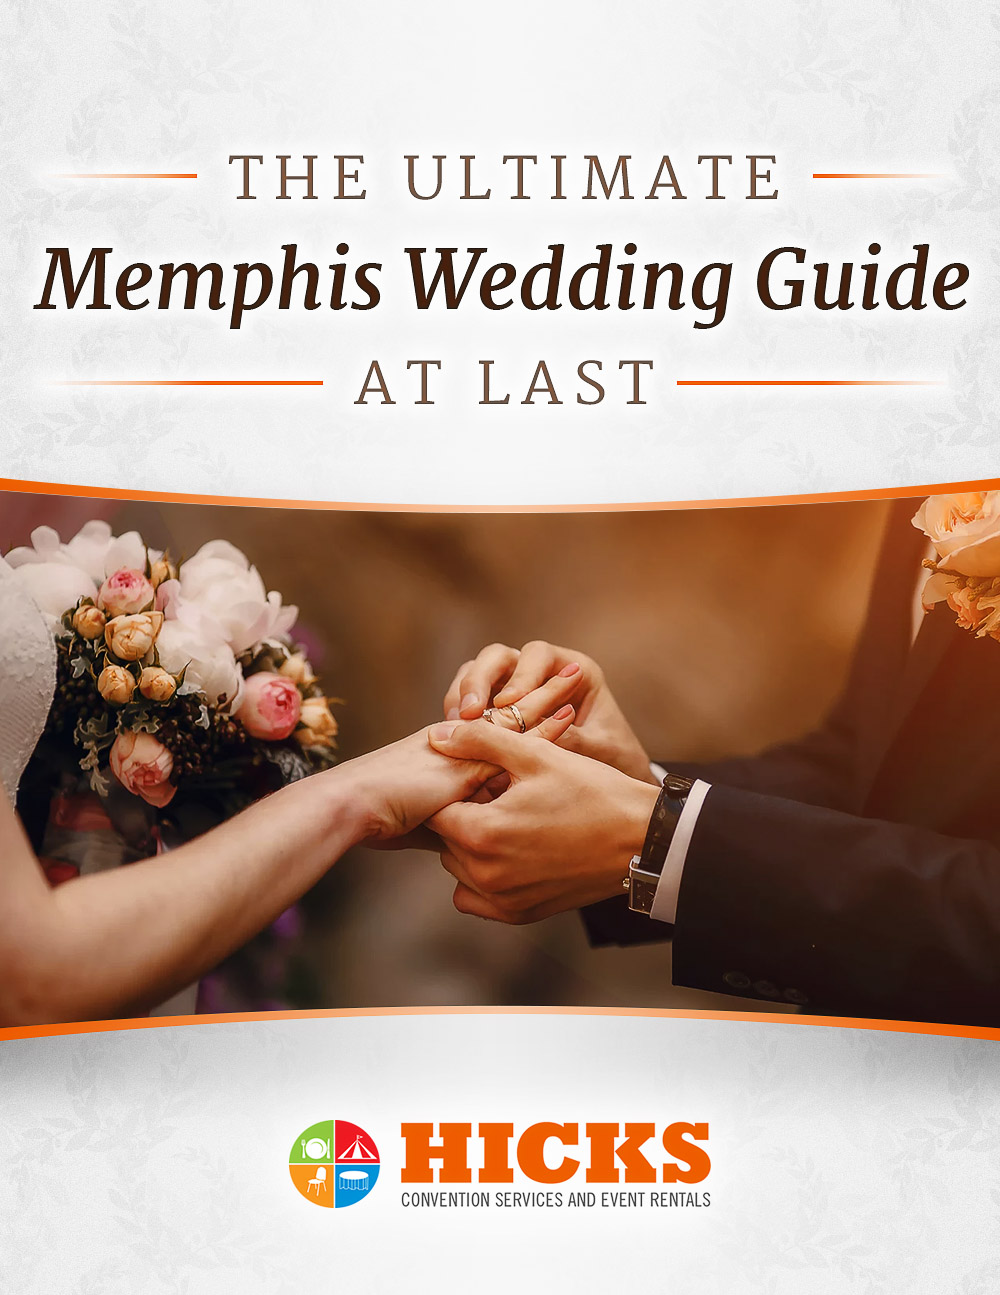 The Ultimate Memphis Wedding Guide by Hicks Conventions